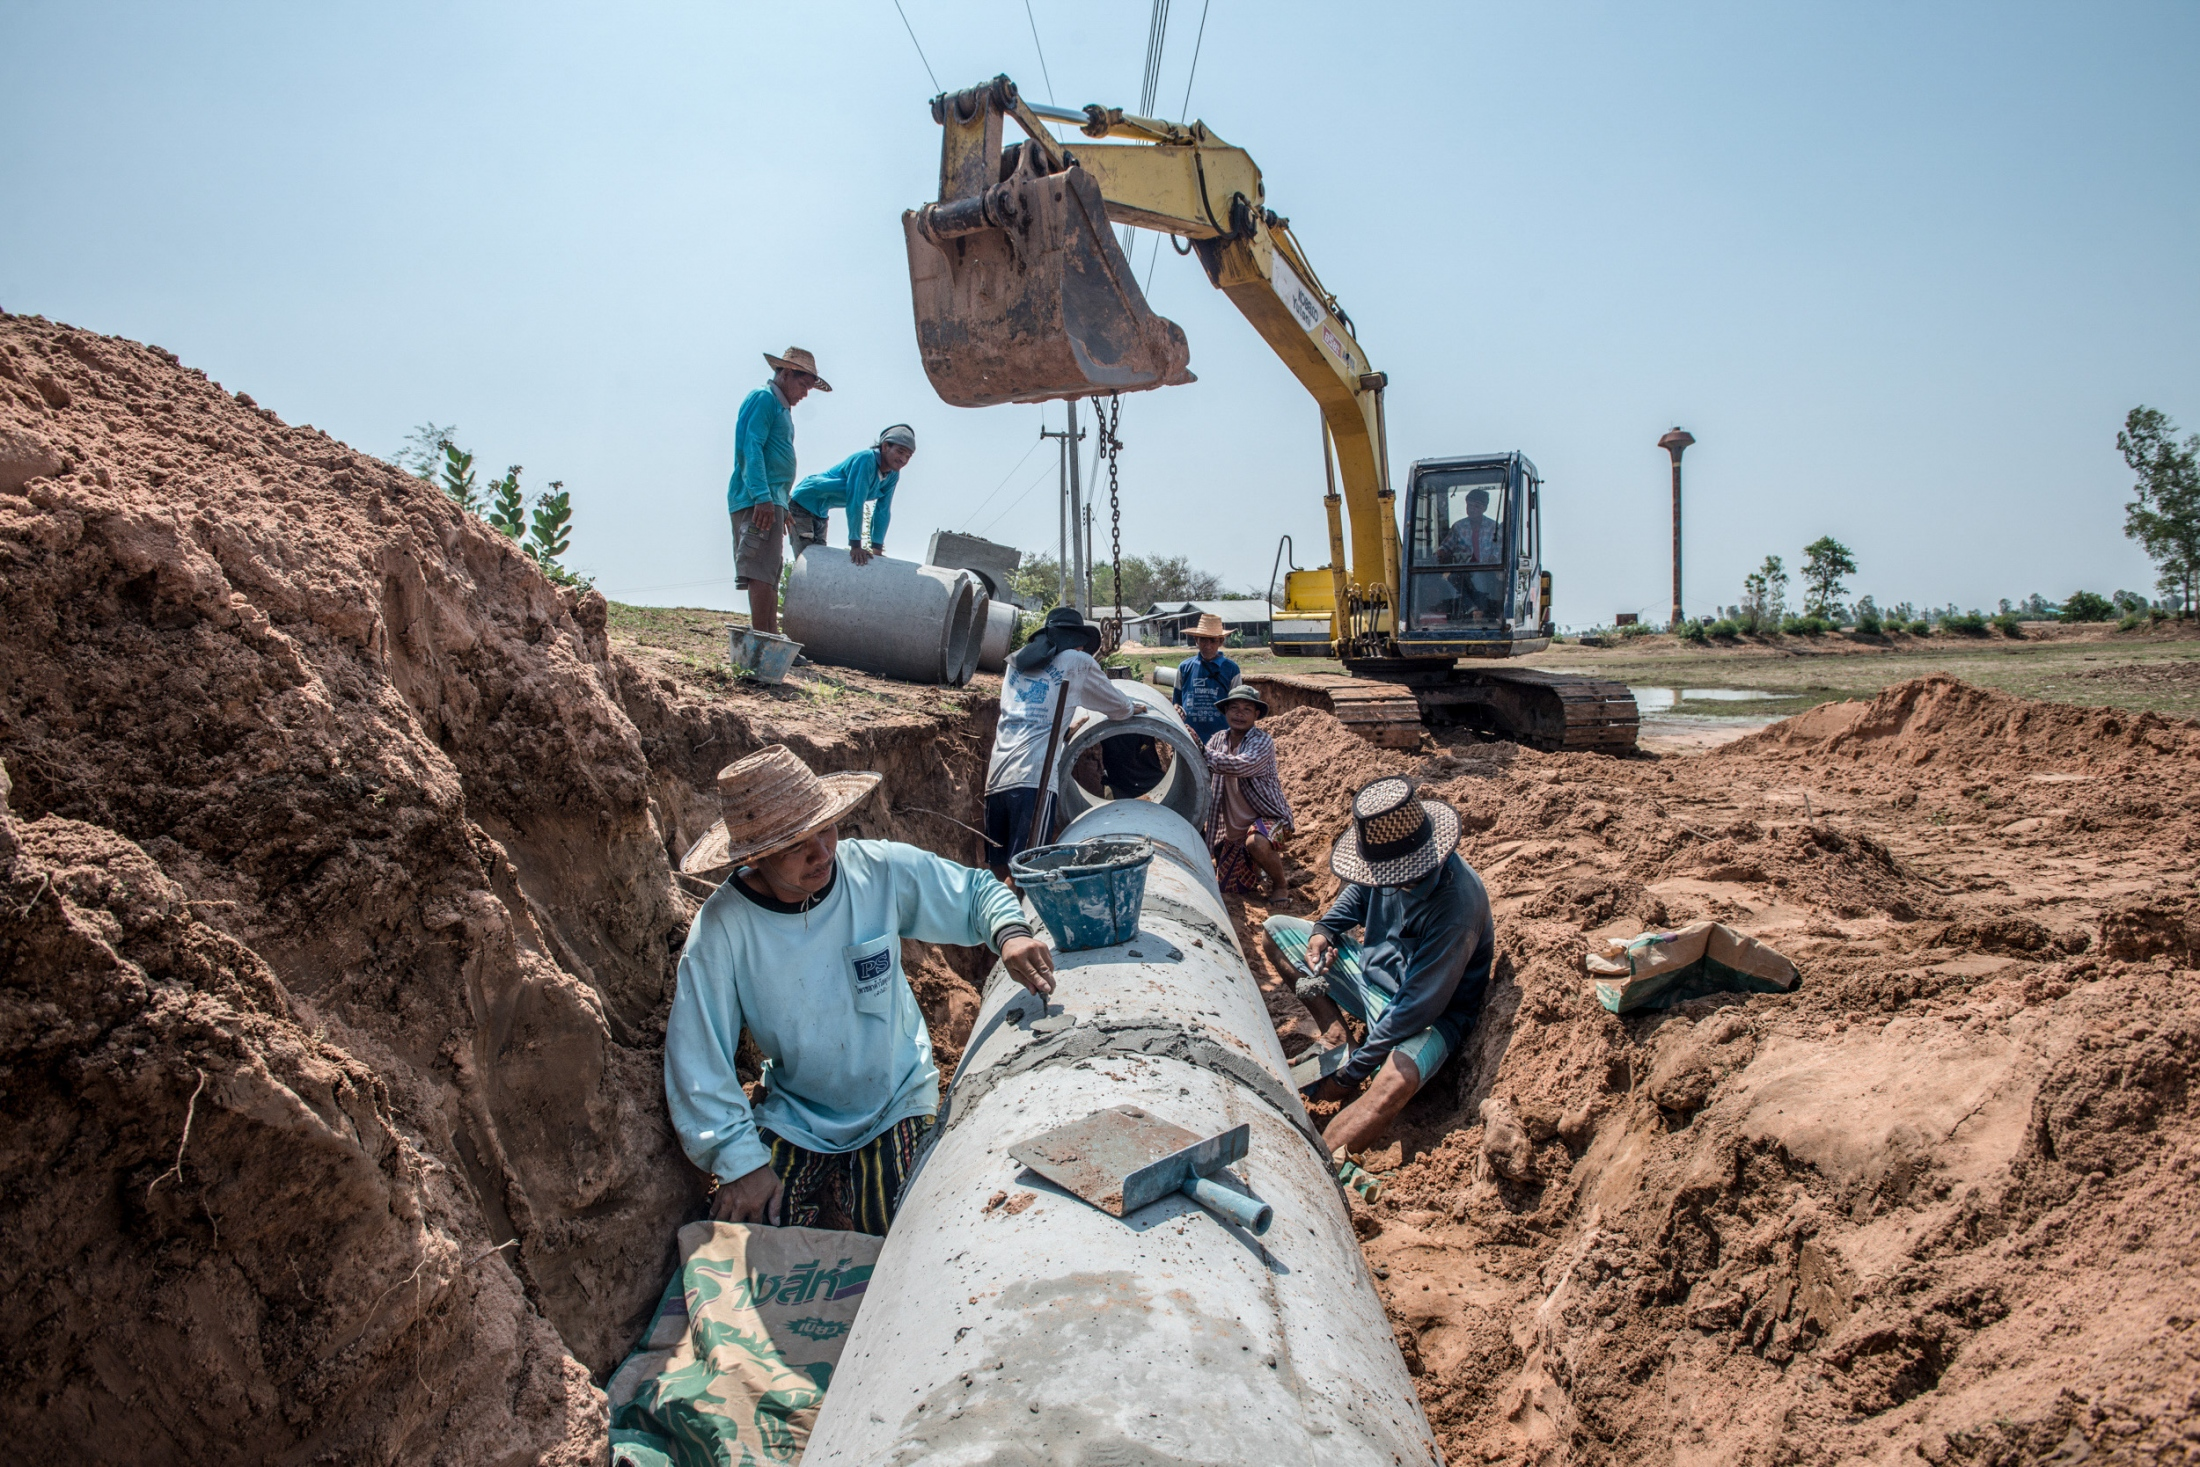 Construction workers are placing water pipe commuting fresh water to villages that have been affected by the extended drought in the heavy drought period.